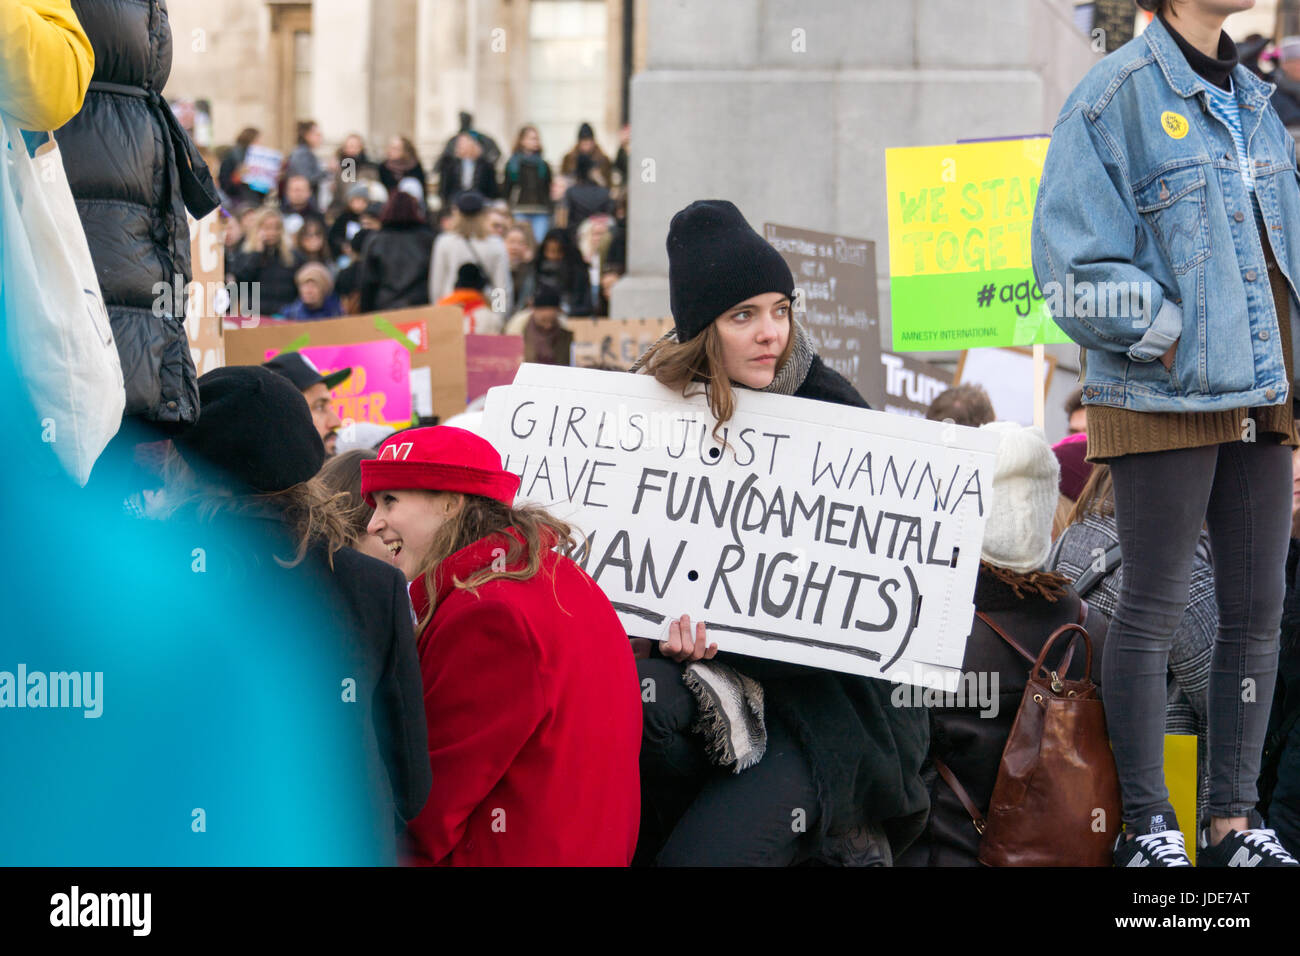 Women's March against Trump, got all my sisters with me sign - Stock Image